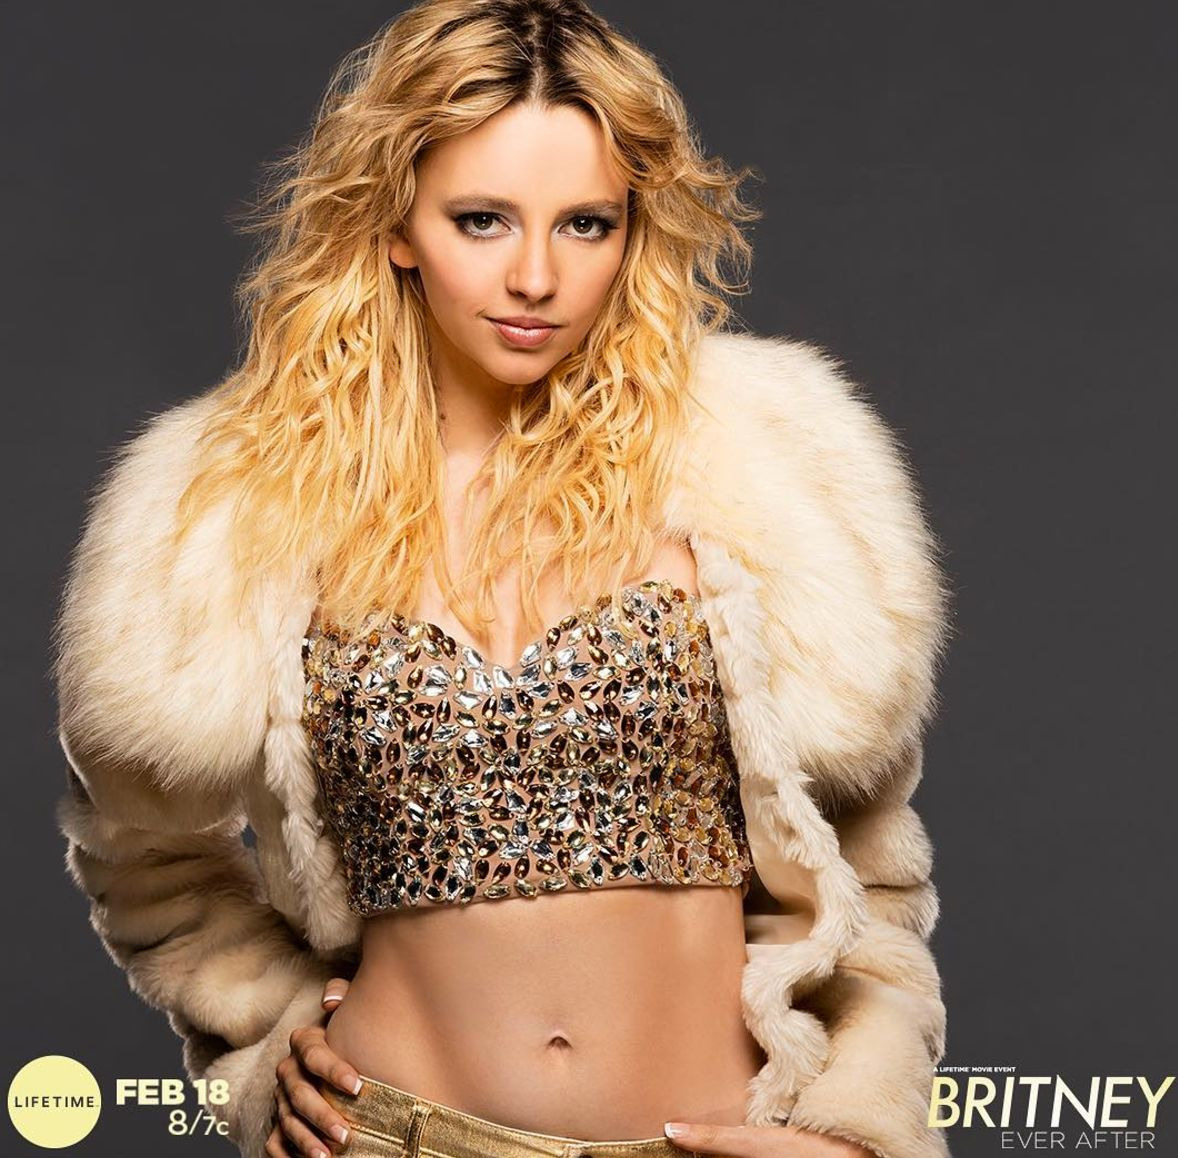 Twitter Couldn't Handle How Terrible Lifetime's Britney Spears Biopic